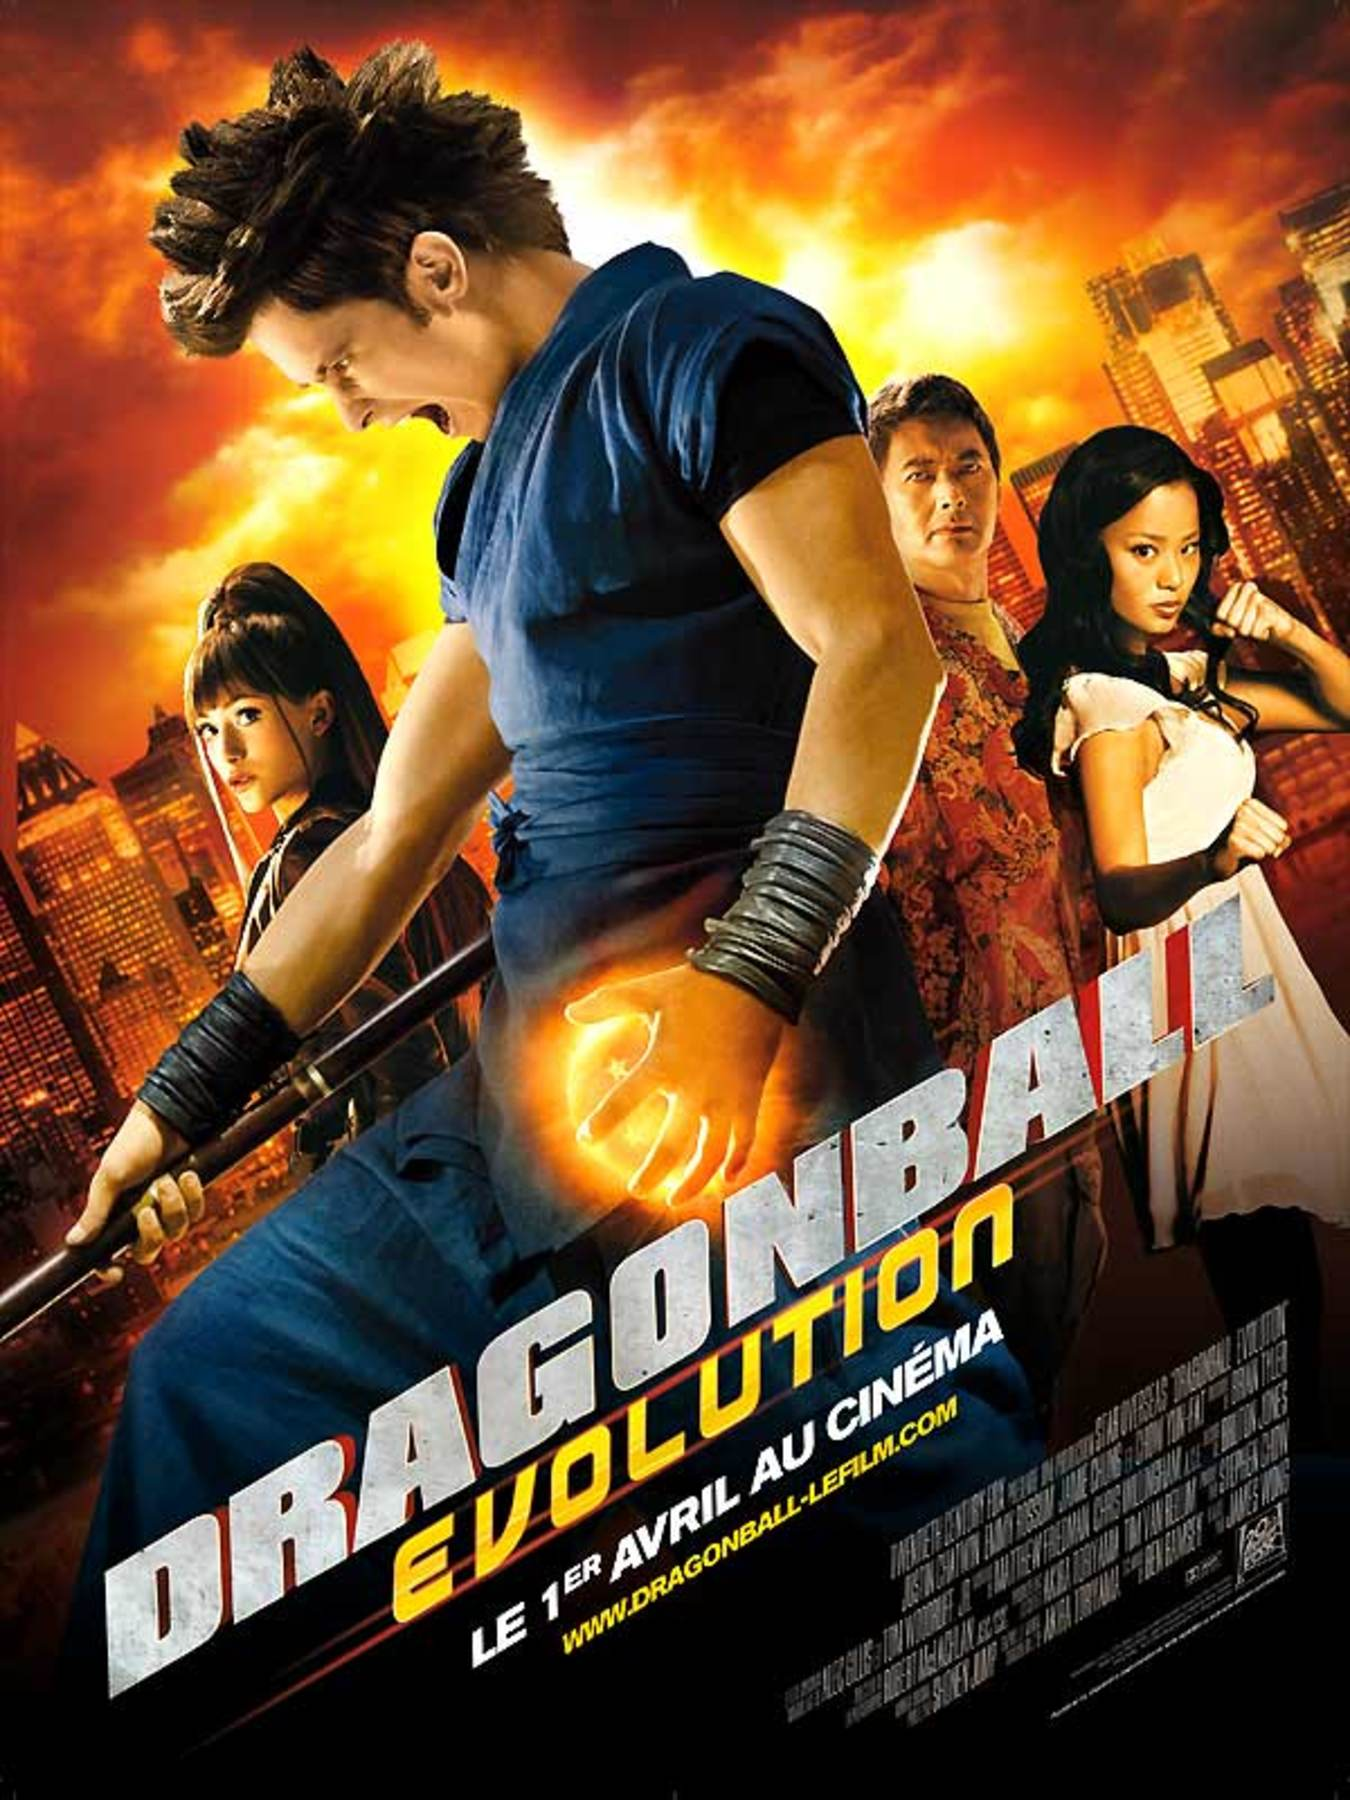 affiche poster dragonball evolution disney fox